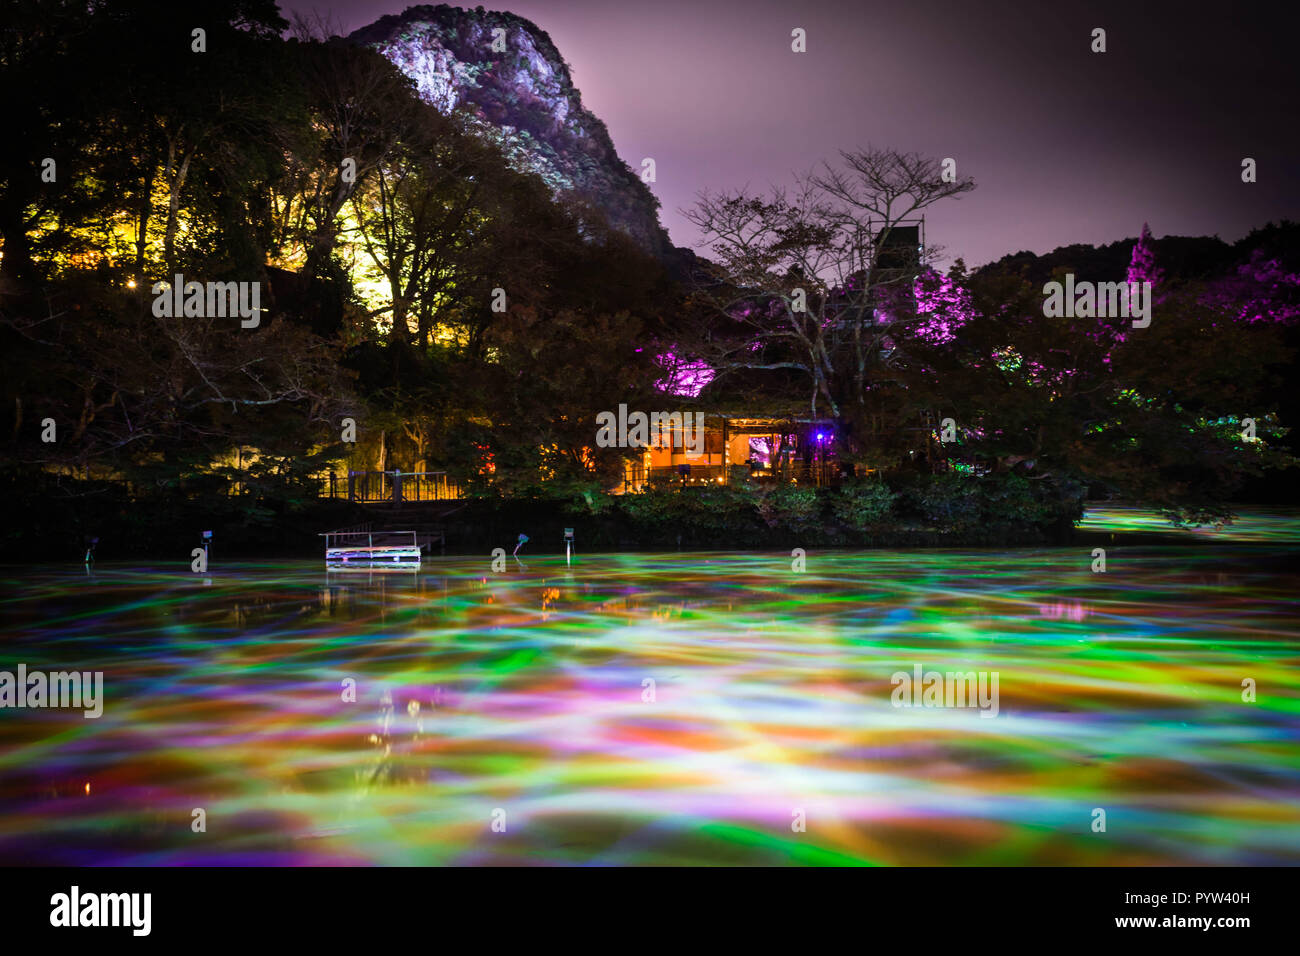 Different color of lights in the water pond at night at Mifuneyama Rakuen Garden in Saga, Japan. - Stock Image